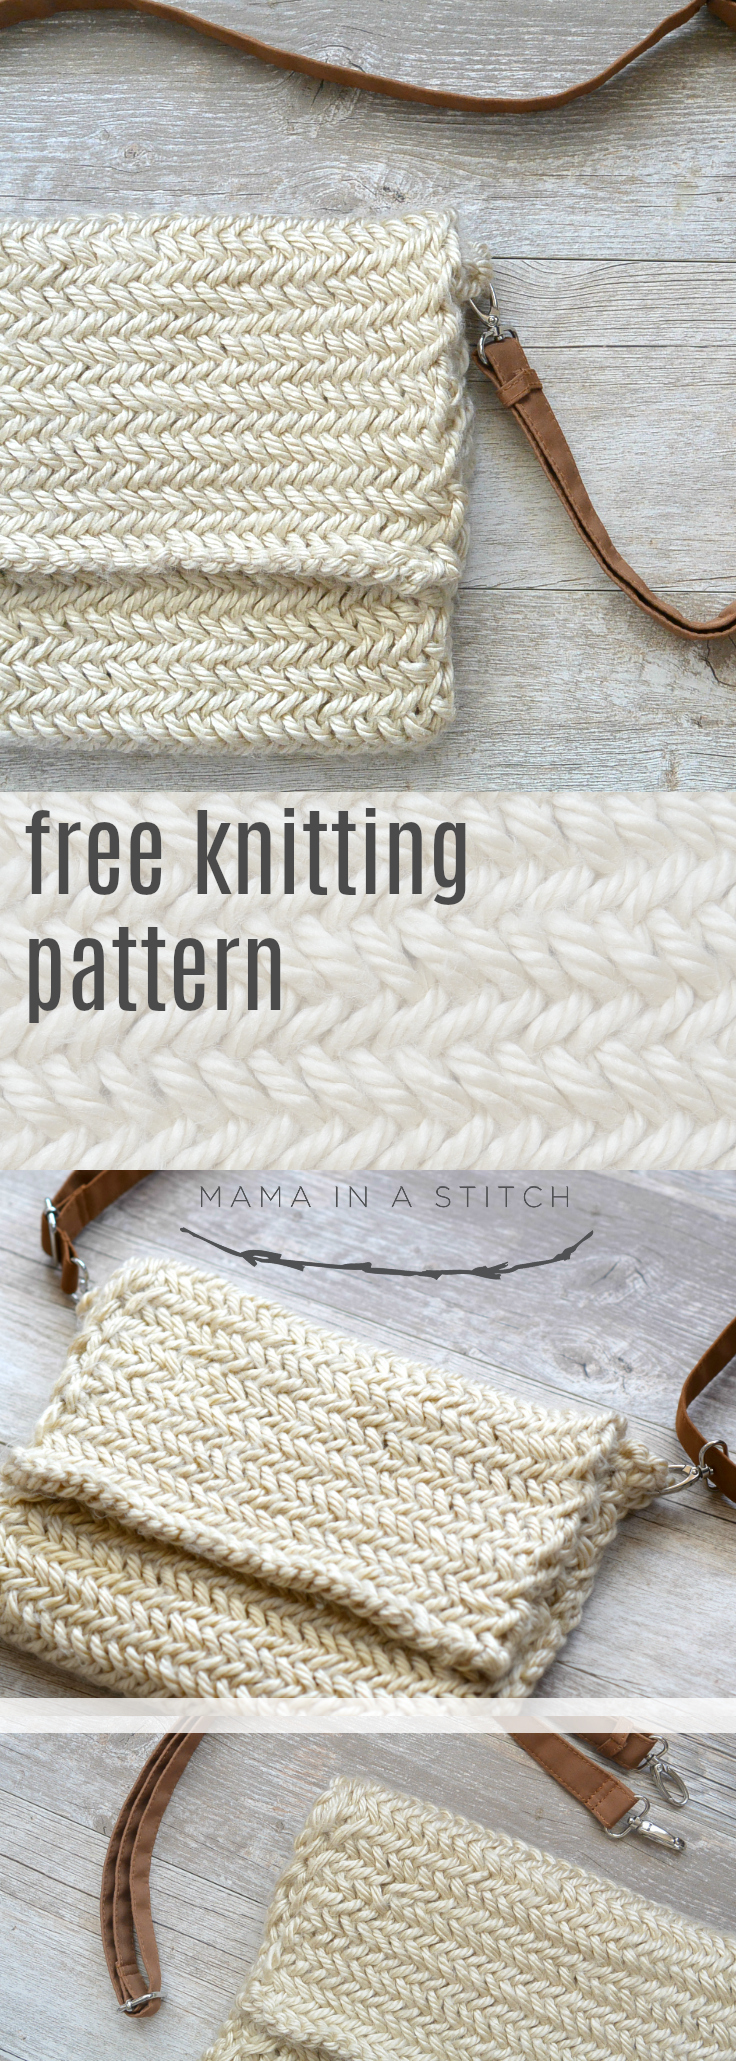 This gorgeous bag is so easy to knit with this free knitting pattern and links to a tutorial! Perfect for fall, winter or any time of year. #diy #crafts #knittingpatterns